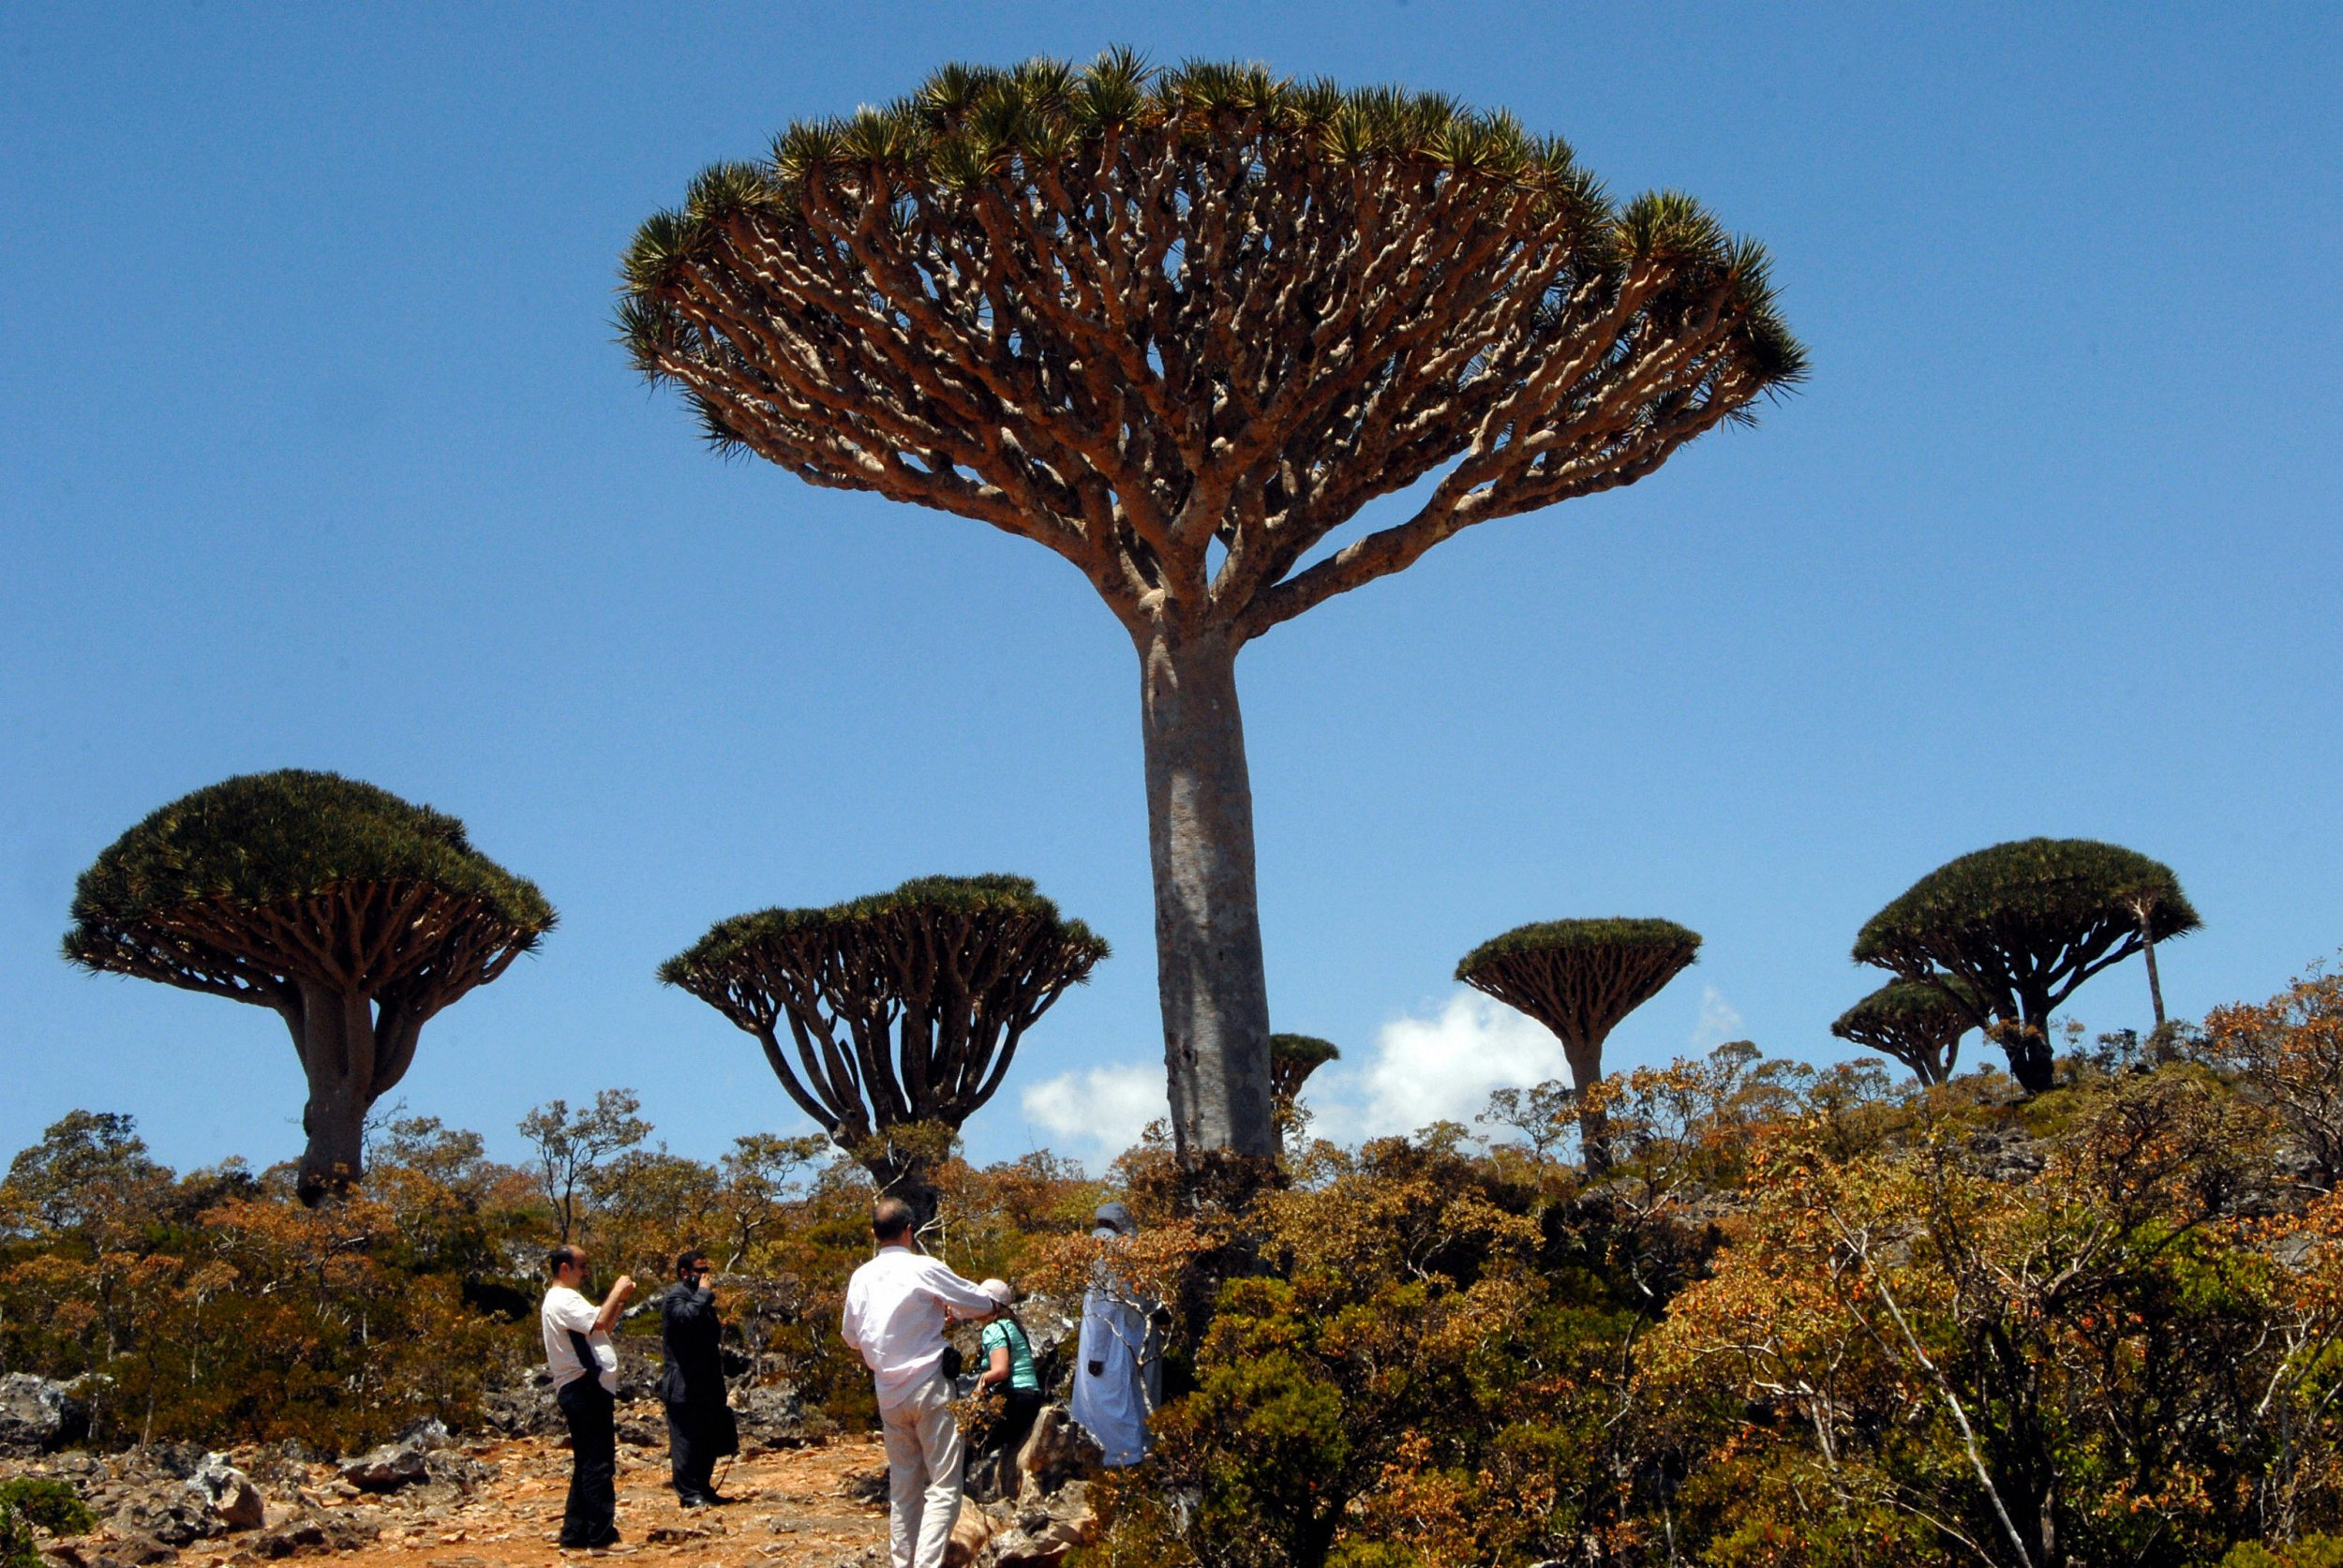 """Yemeni and foreign tourists gather to admire an example of the Dragon Blood tree on the virtually untouched Yemeni Island of Socotra, a site of global importance for biodiversity conservation, located in the northwestern Indian Ocean, some 350km south of the Arabian Peninsula on March 27, 2008. Socotra is the main island of an archipelago of the same name, sometimes referred to as """"the Galapagos of the Indian Ocean."""" The island is historically famous for its unique and spectacular vegetation -- botanists rank the flora of Socotra among the ten most endangered island flora in the world -- and now the opening of an airport in 1999 and other infrastructure developments are turning Socotra into a possible off-beat eco-tourist destination. The Dragon Blood tree is unique to the island. AFP PHOTO/KHALED FAZAA (Photo credit should read KHALED FAZAA/AFP/Getty Images)"""